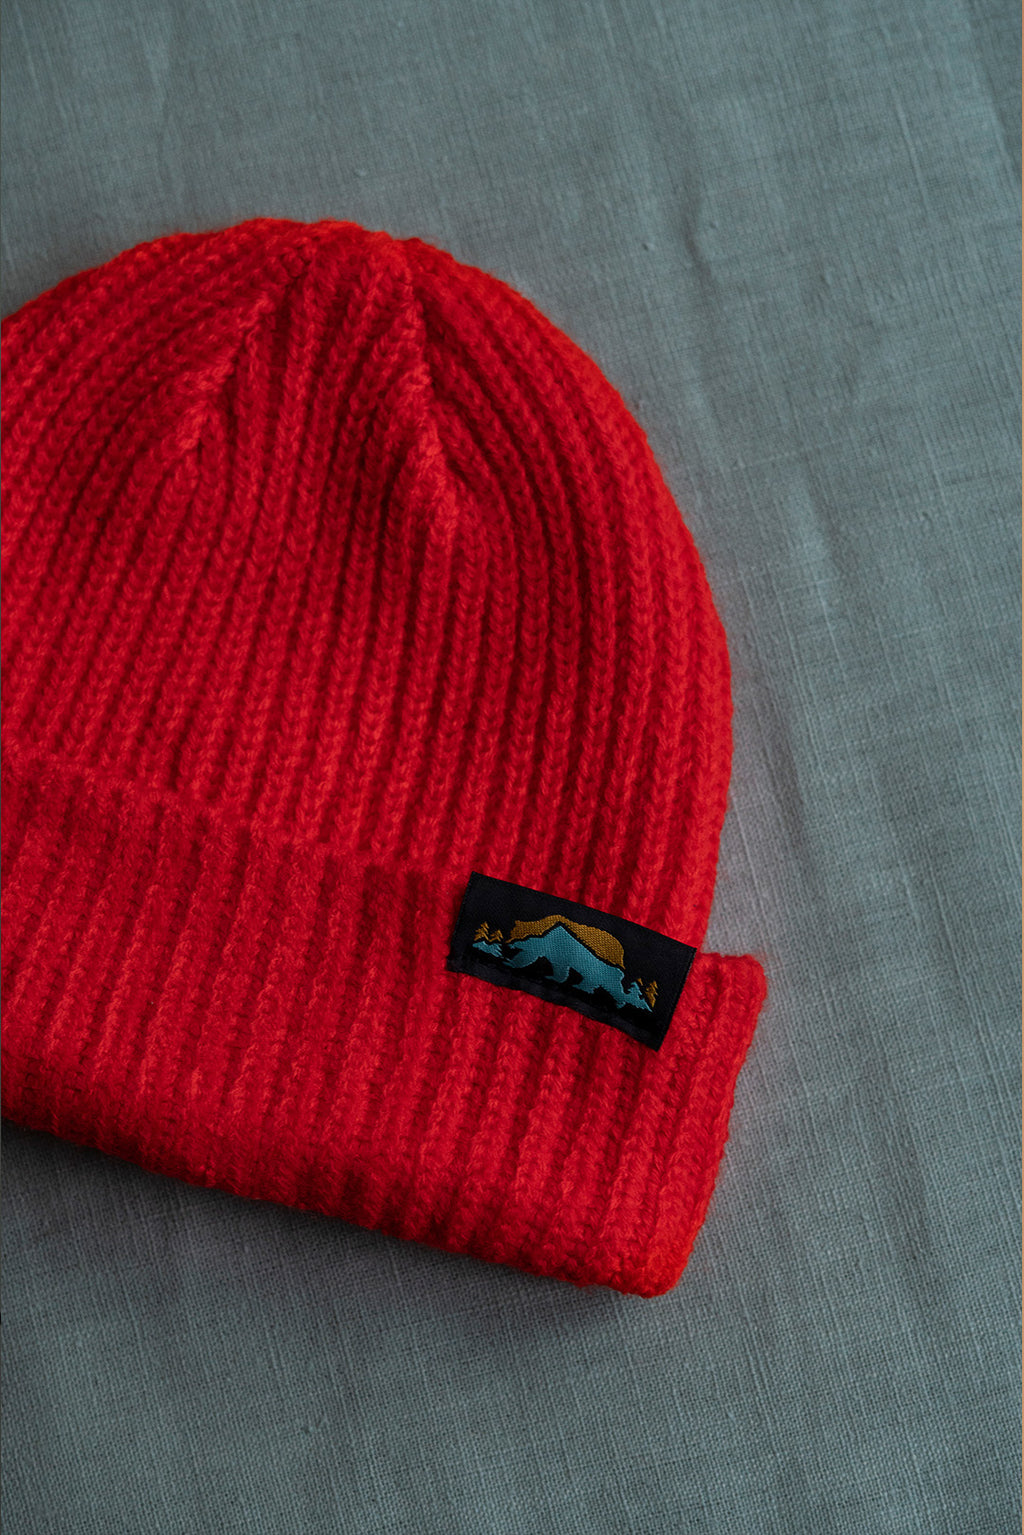 Ribbed Beanie - Red